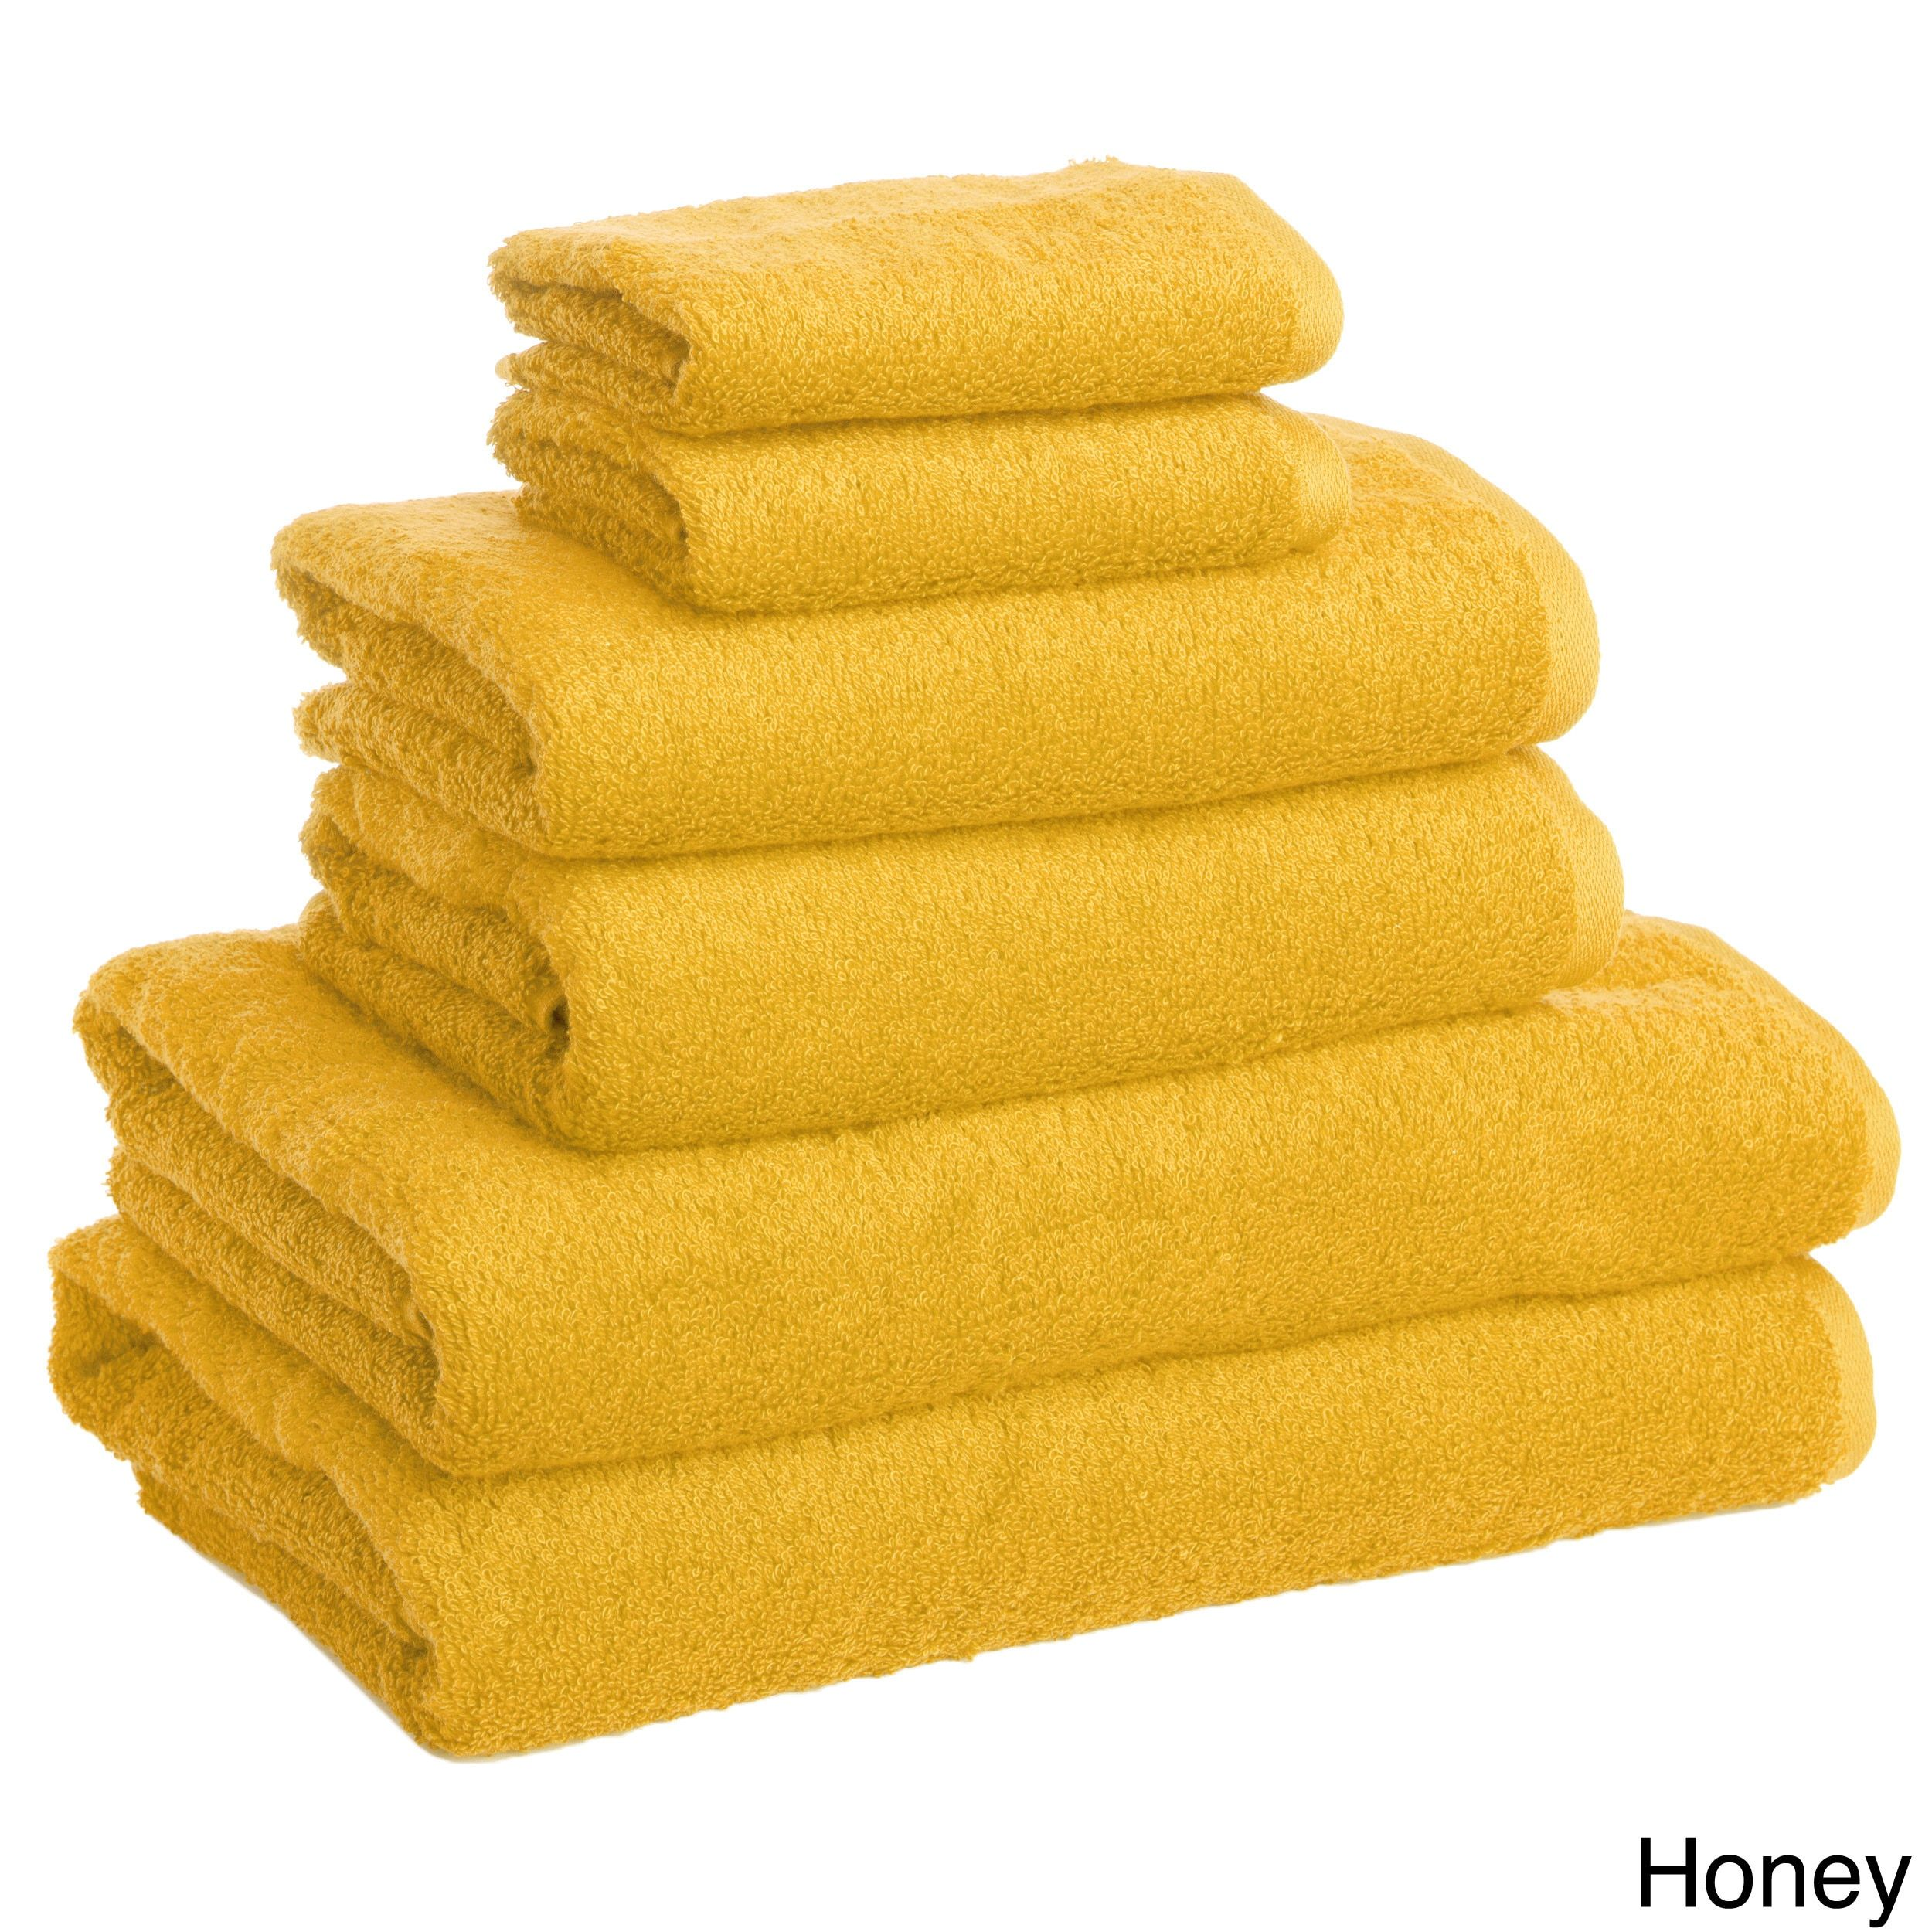 Soft Home Hotel Bath Towel Organic Cotton Bath Towels Disposable Shower Towels Sage Towels George Pig Towel